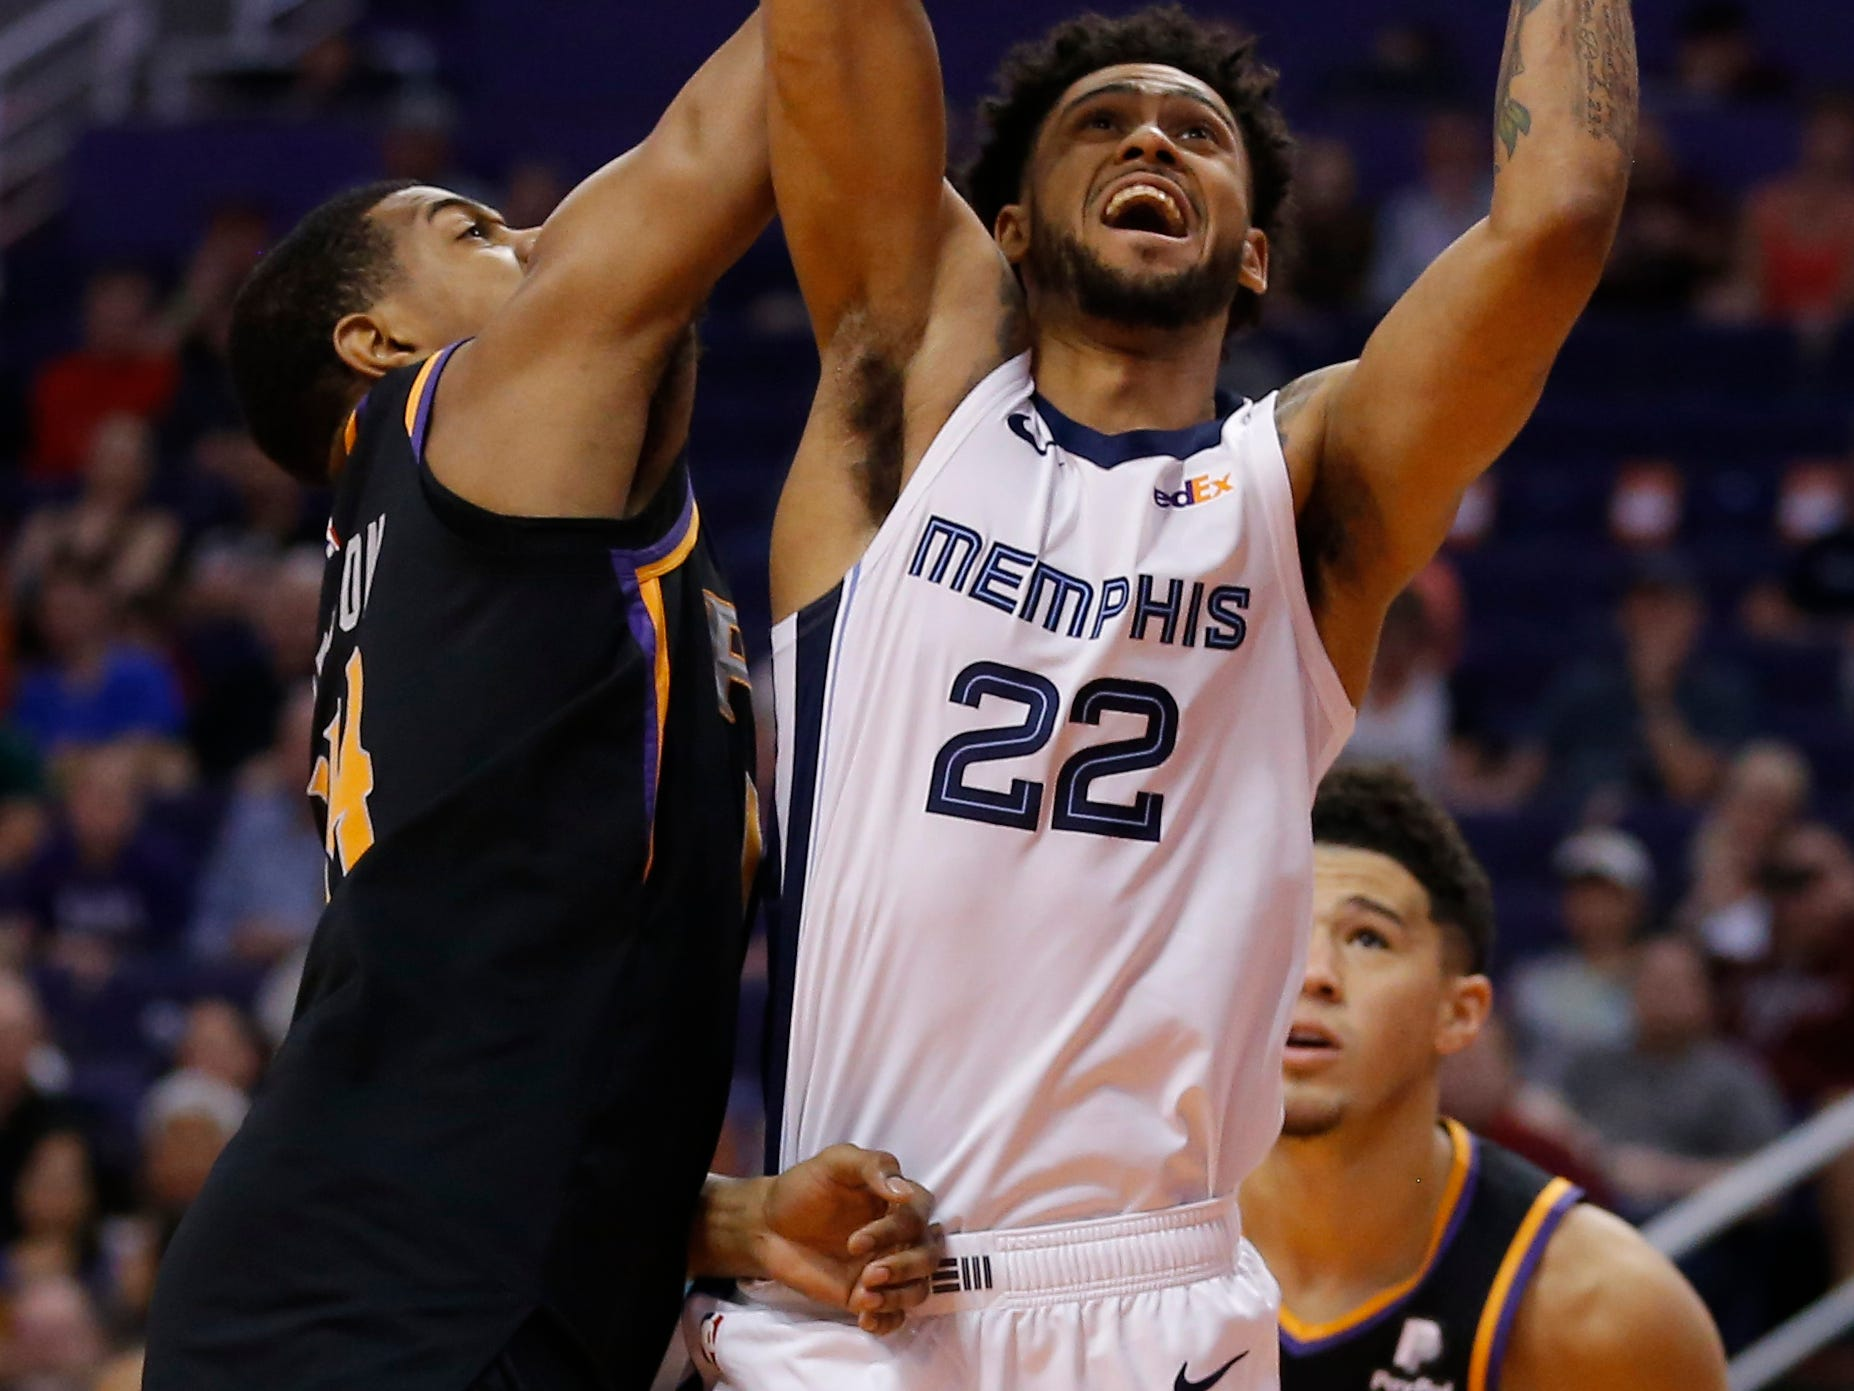 Memphis Grizzlies guard Tyler Dorsey, right, drives past Phoenix Suns guard De'Anthony Melton, left, in the first half during an NBA basketball game, Saturday, March 30, 2019, in Phoenix. (AP Photo/Rick Scuteri)